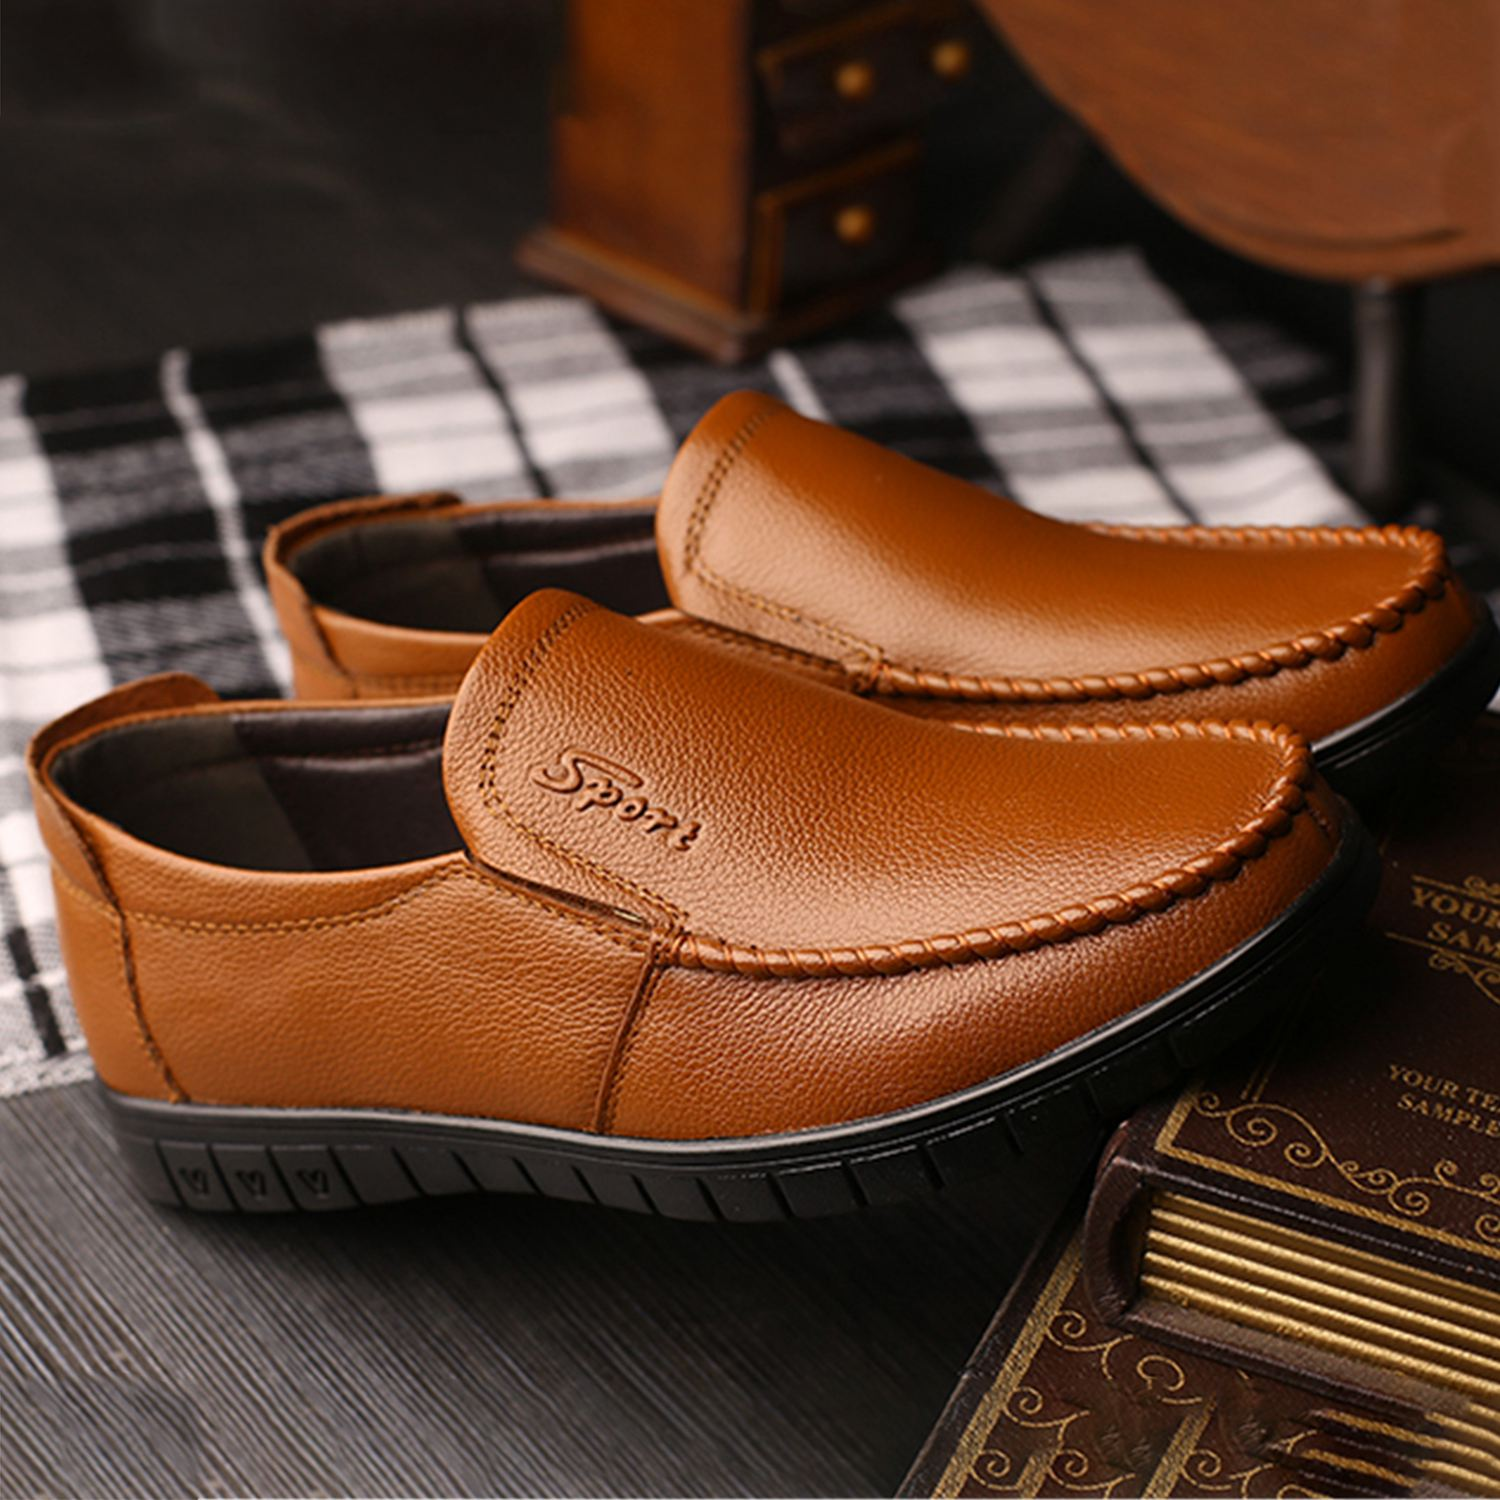 HEBA Men Soft Leather Loafers Spring Summer Male Casual Shoes Genuine Leather Moccasin Flat Breathable Driving Shoe tassel casual loafers men shoes genuine leather flat anti skid driving moccasin slip on spring new black white sperry shoes male